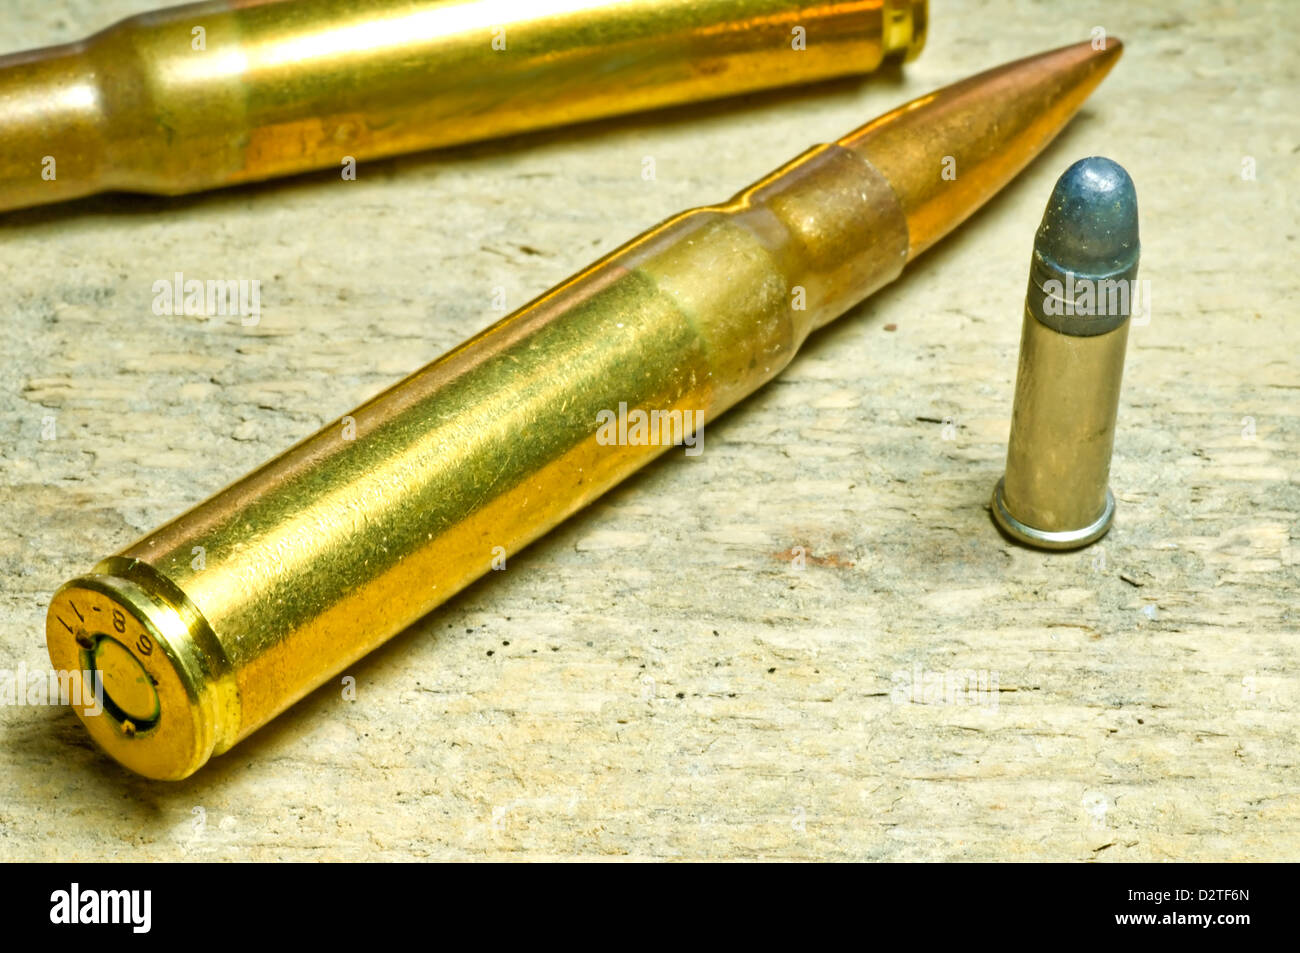 ammunition 8x57IS and cal.22 - Stock Image